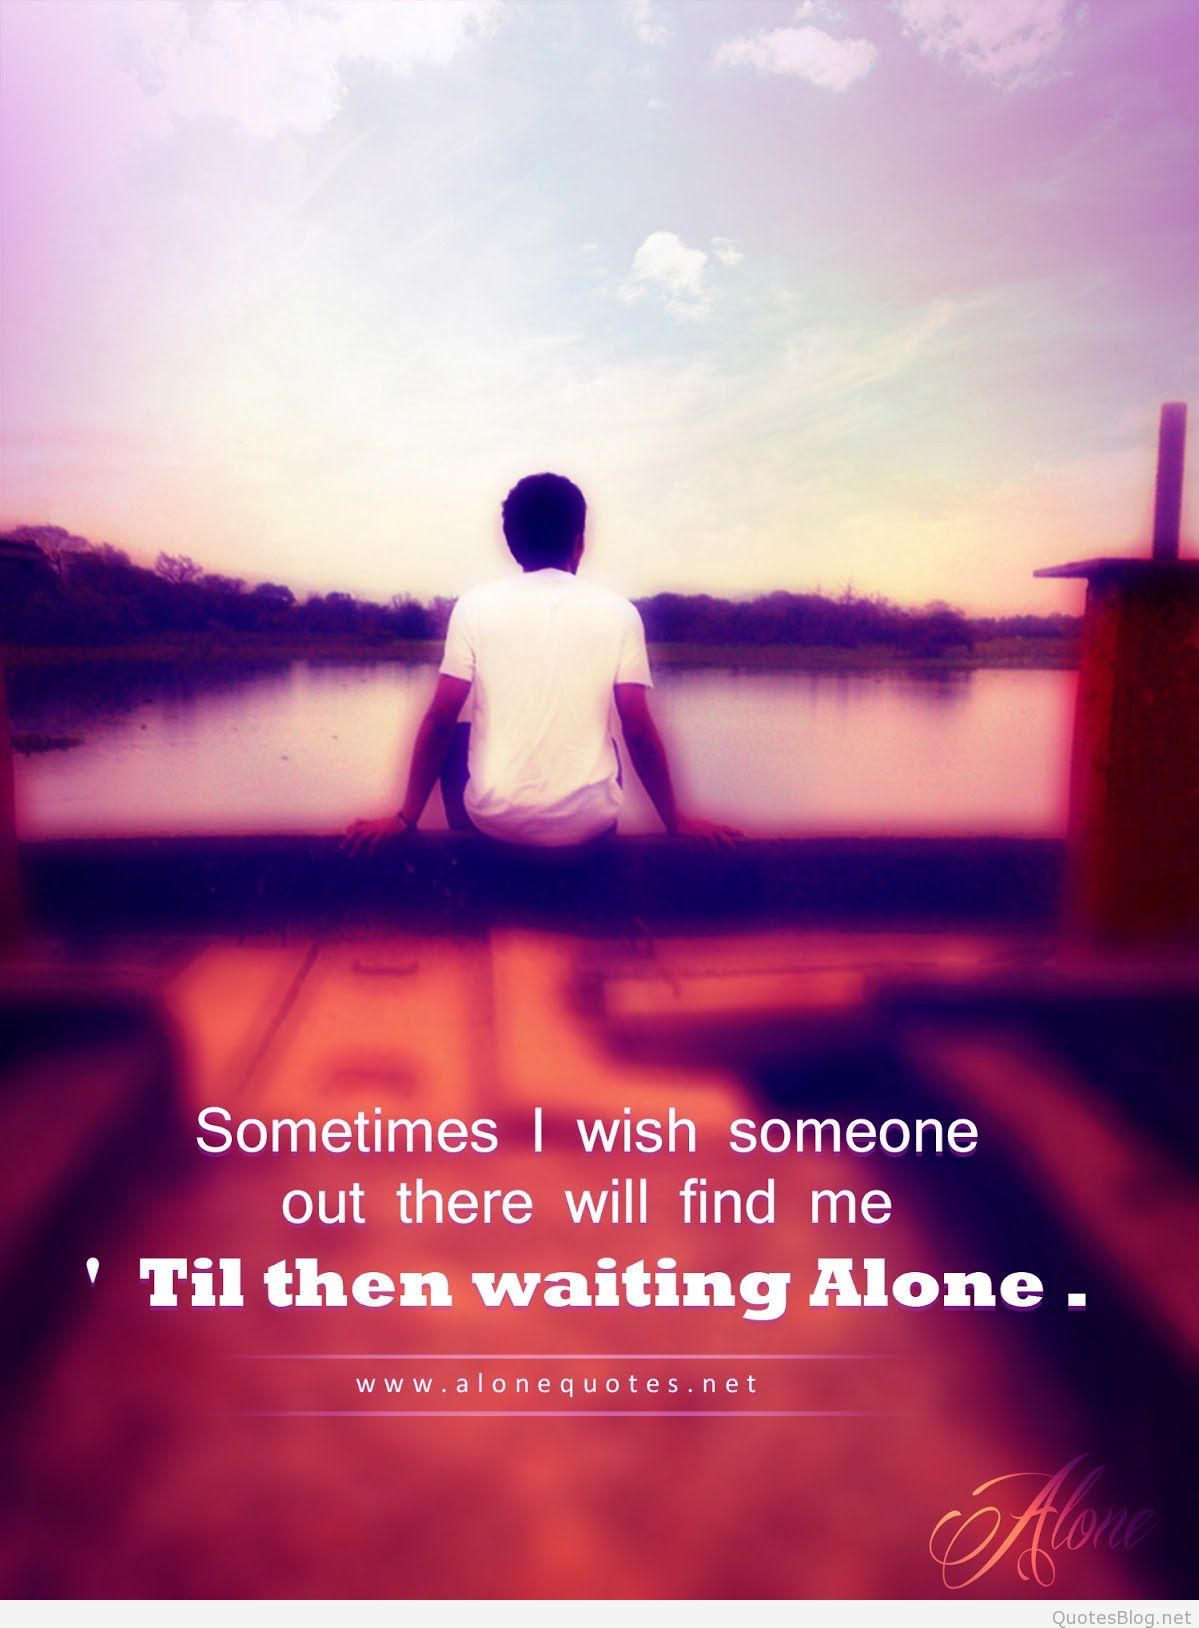 Sad love quotes for boys sad alone boy love quotes wallpaper sad love quotes for boys sad alone boy love quotes wallpaper download sad alone boy love cool voltagebd